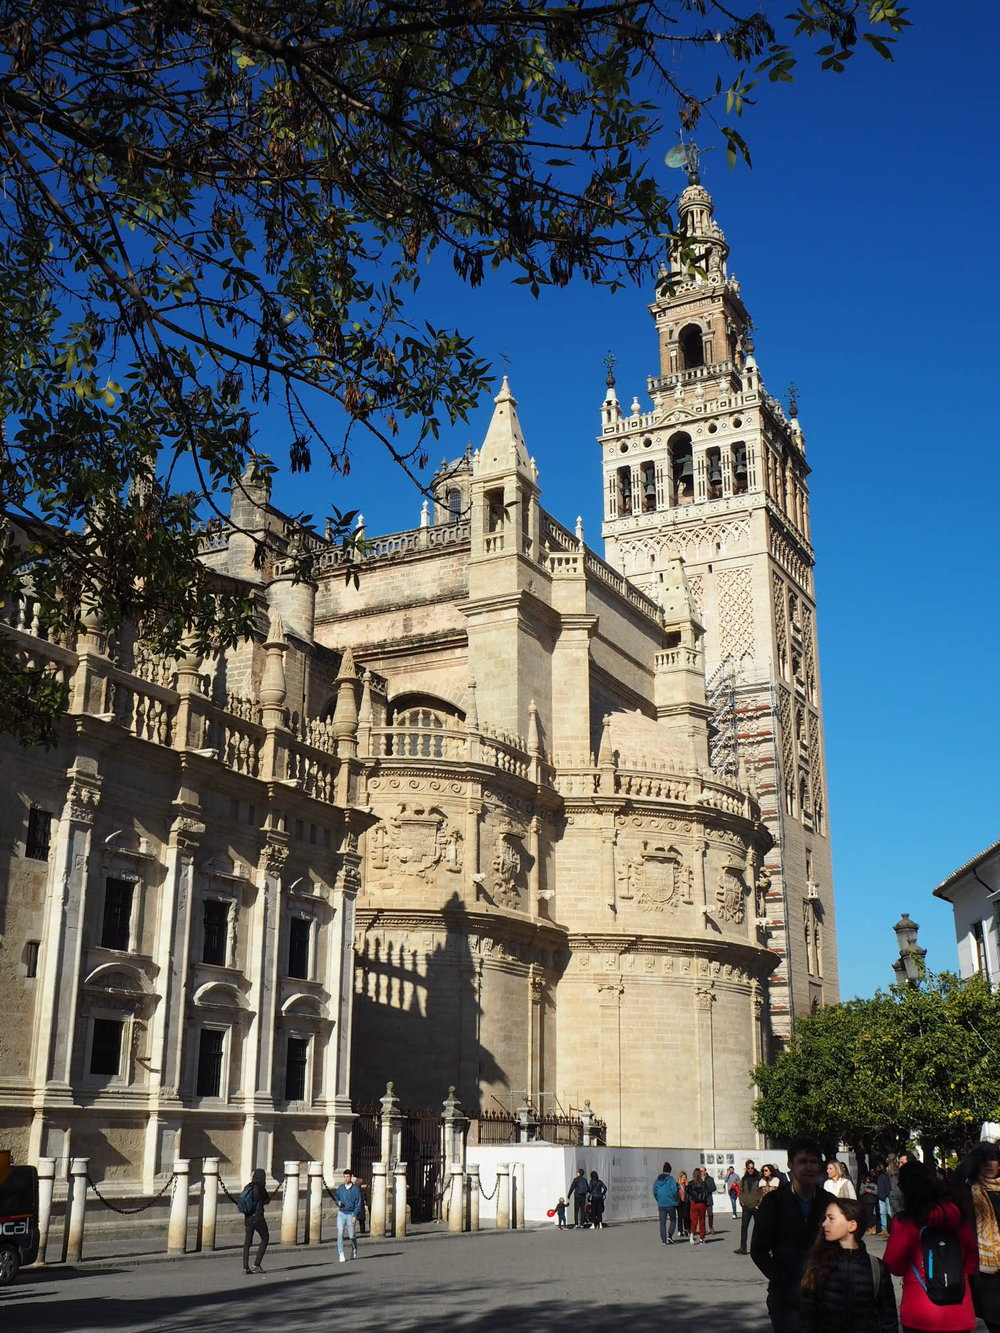 la giralda, the bell tower of the expansive seville cathedral, was originally built as the minaret of the great mosque of seville - catholics added the pointy renaissance-style top to the tower after the Reconquista.